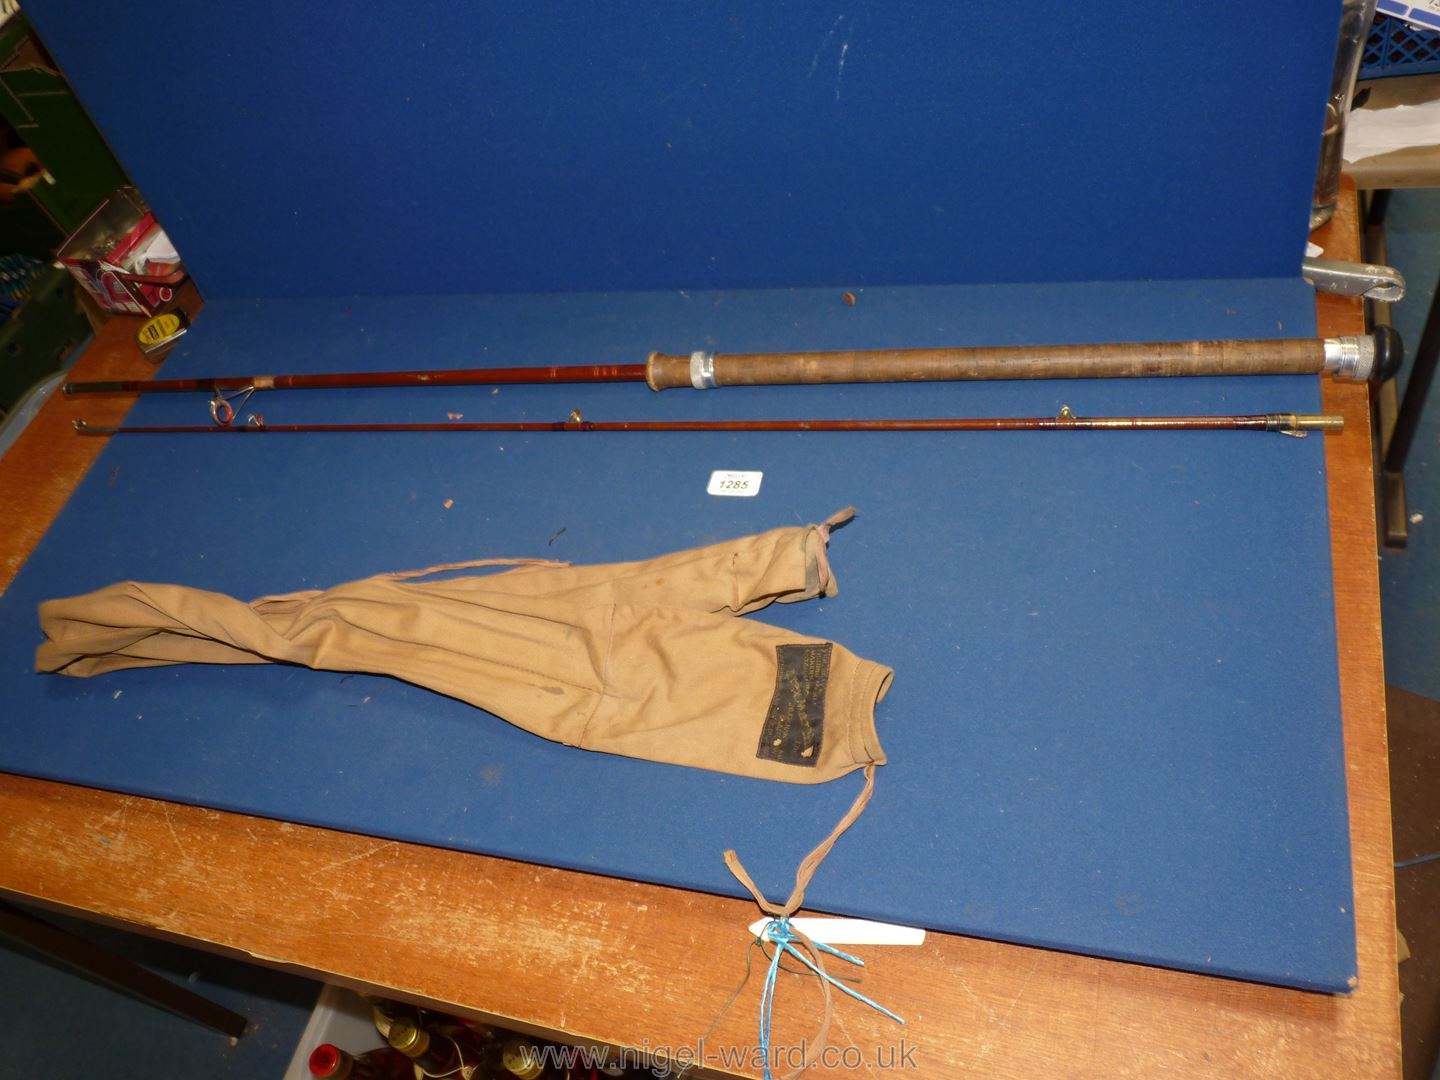 An Alex Martin glass fibre two piece Spinning rod marked 'Salmon 7 lbs',